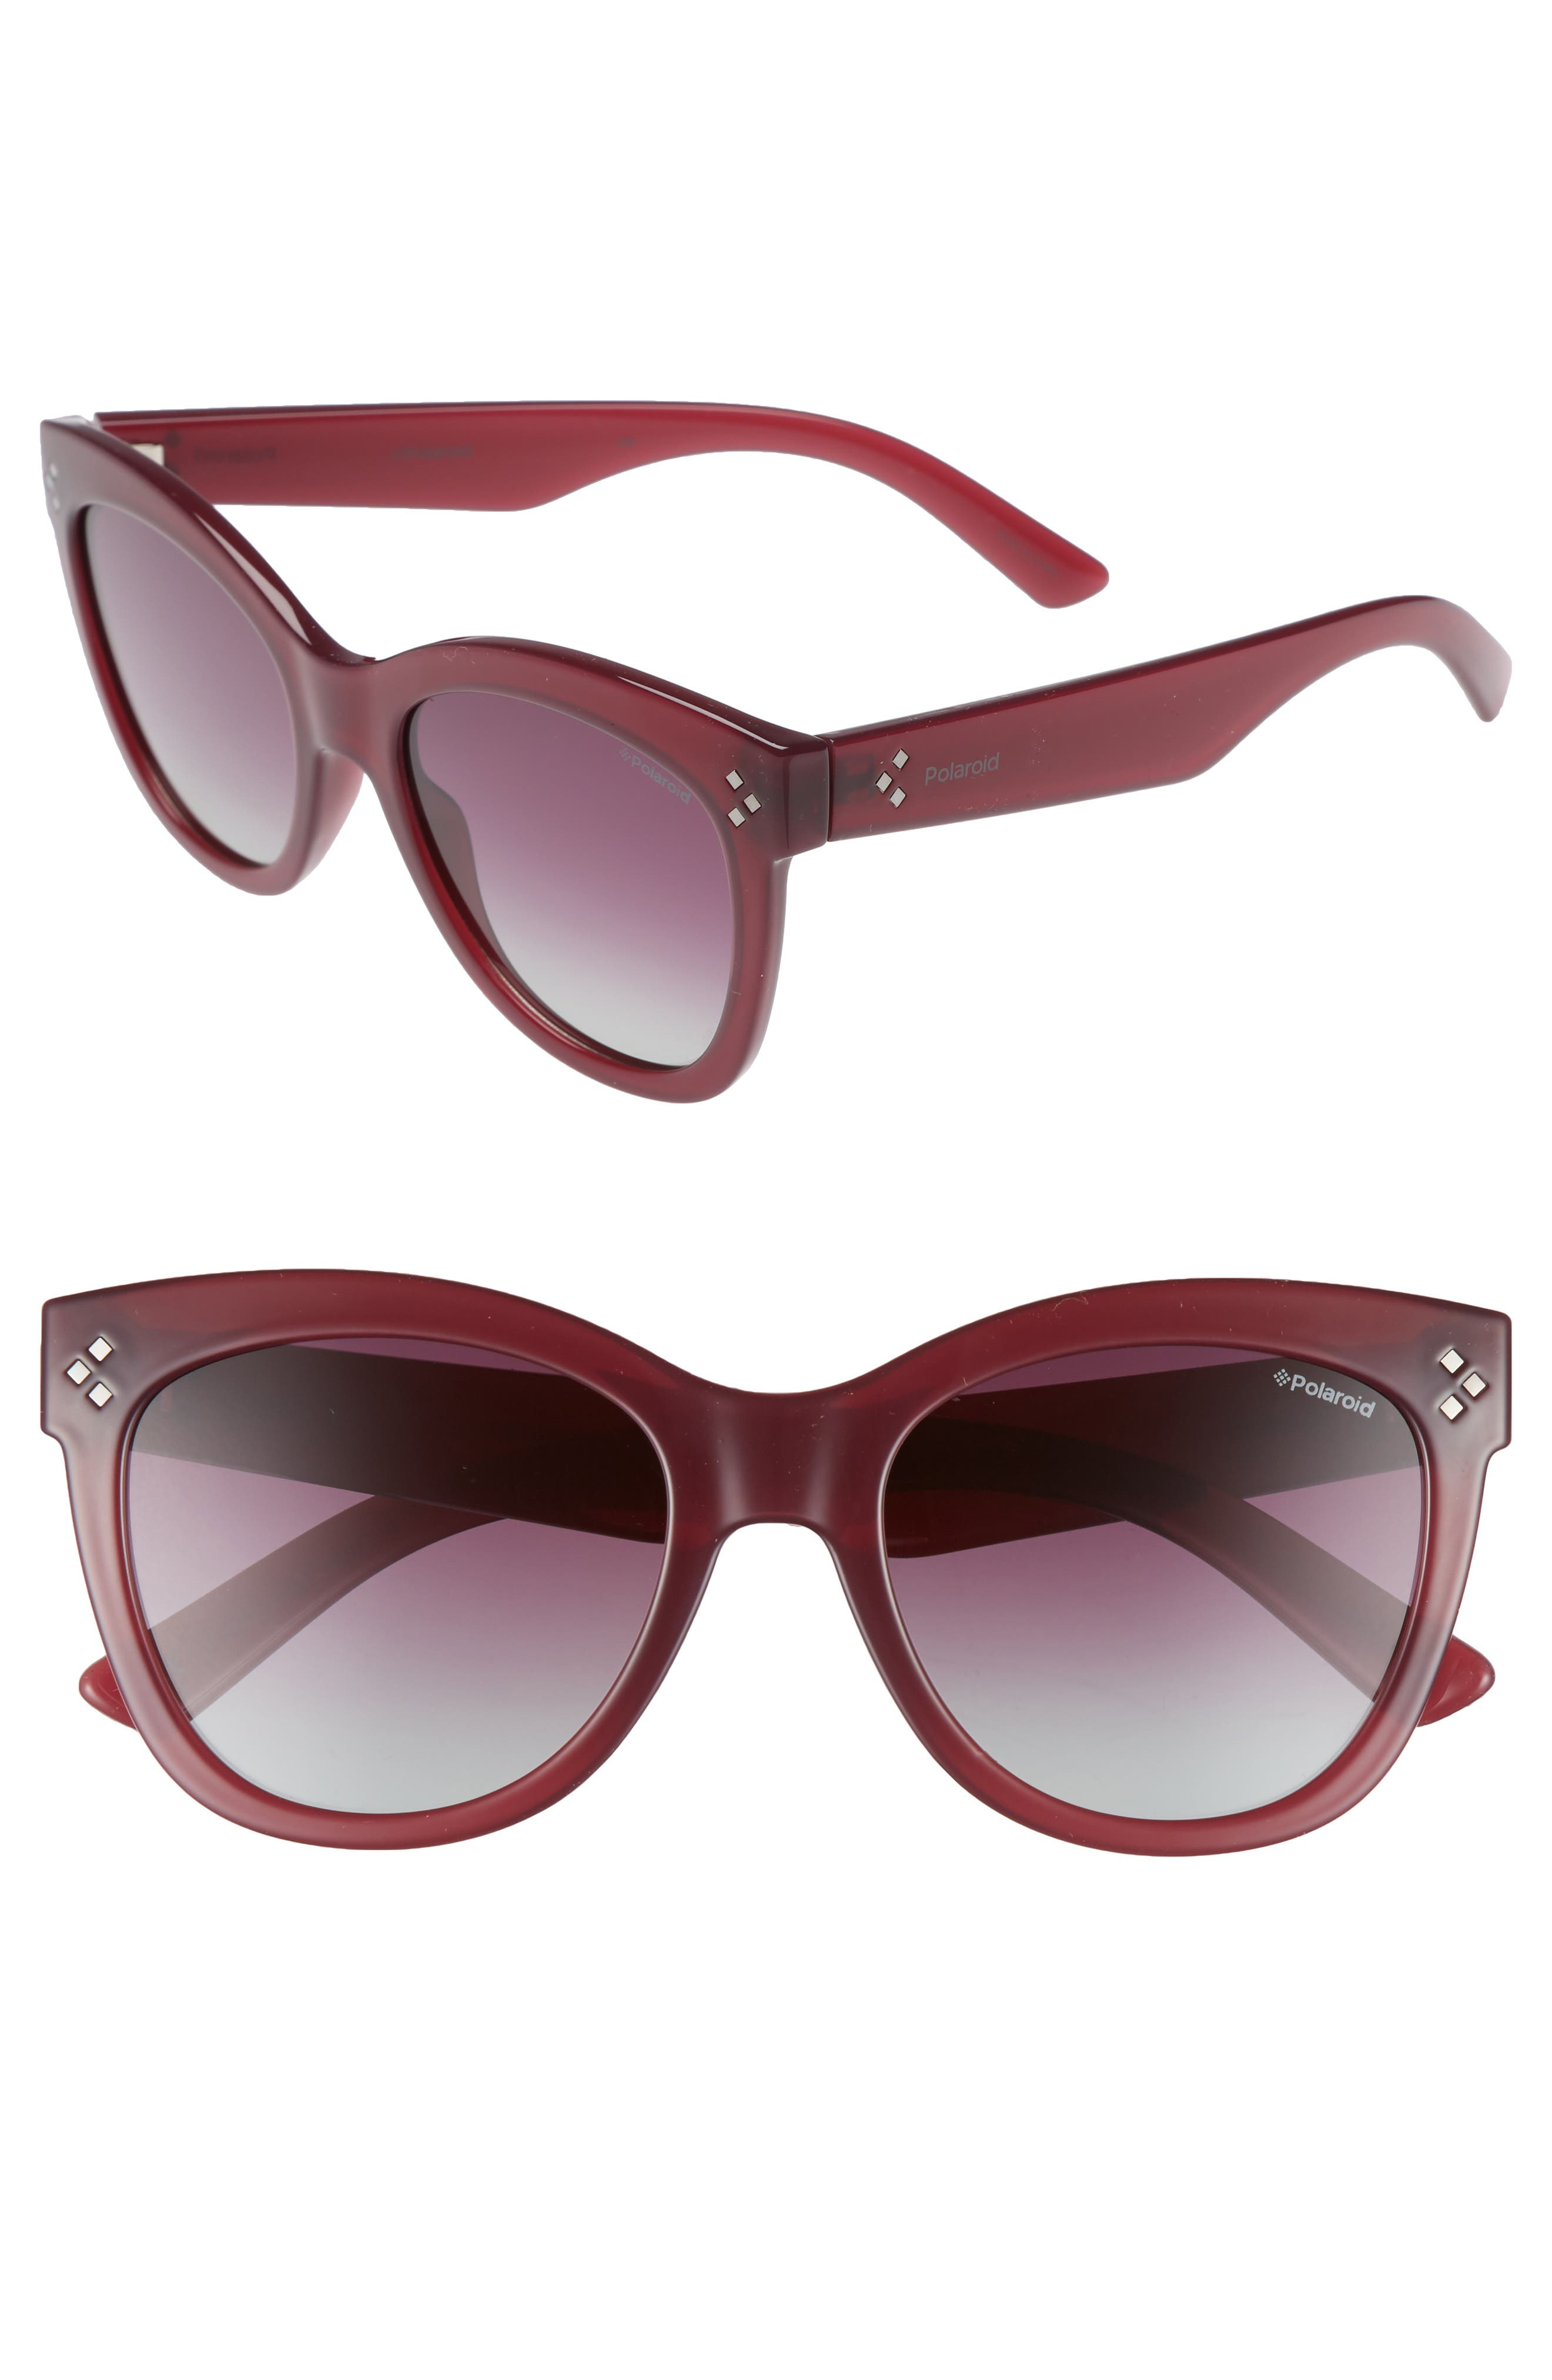 54mm Polarized Sunglasses,                         Main,                         color, Red